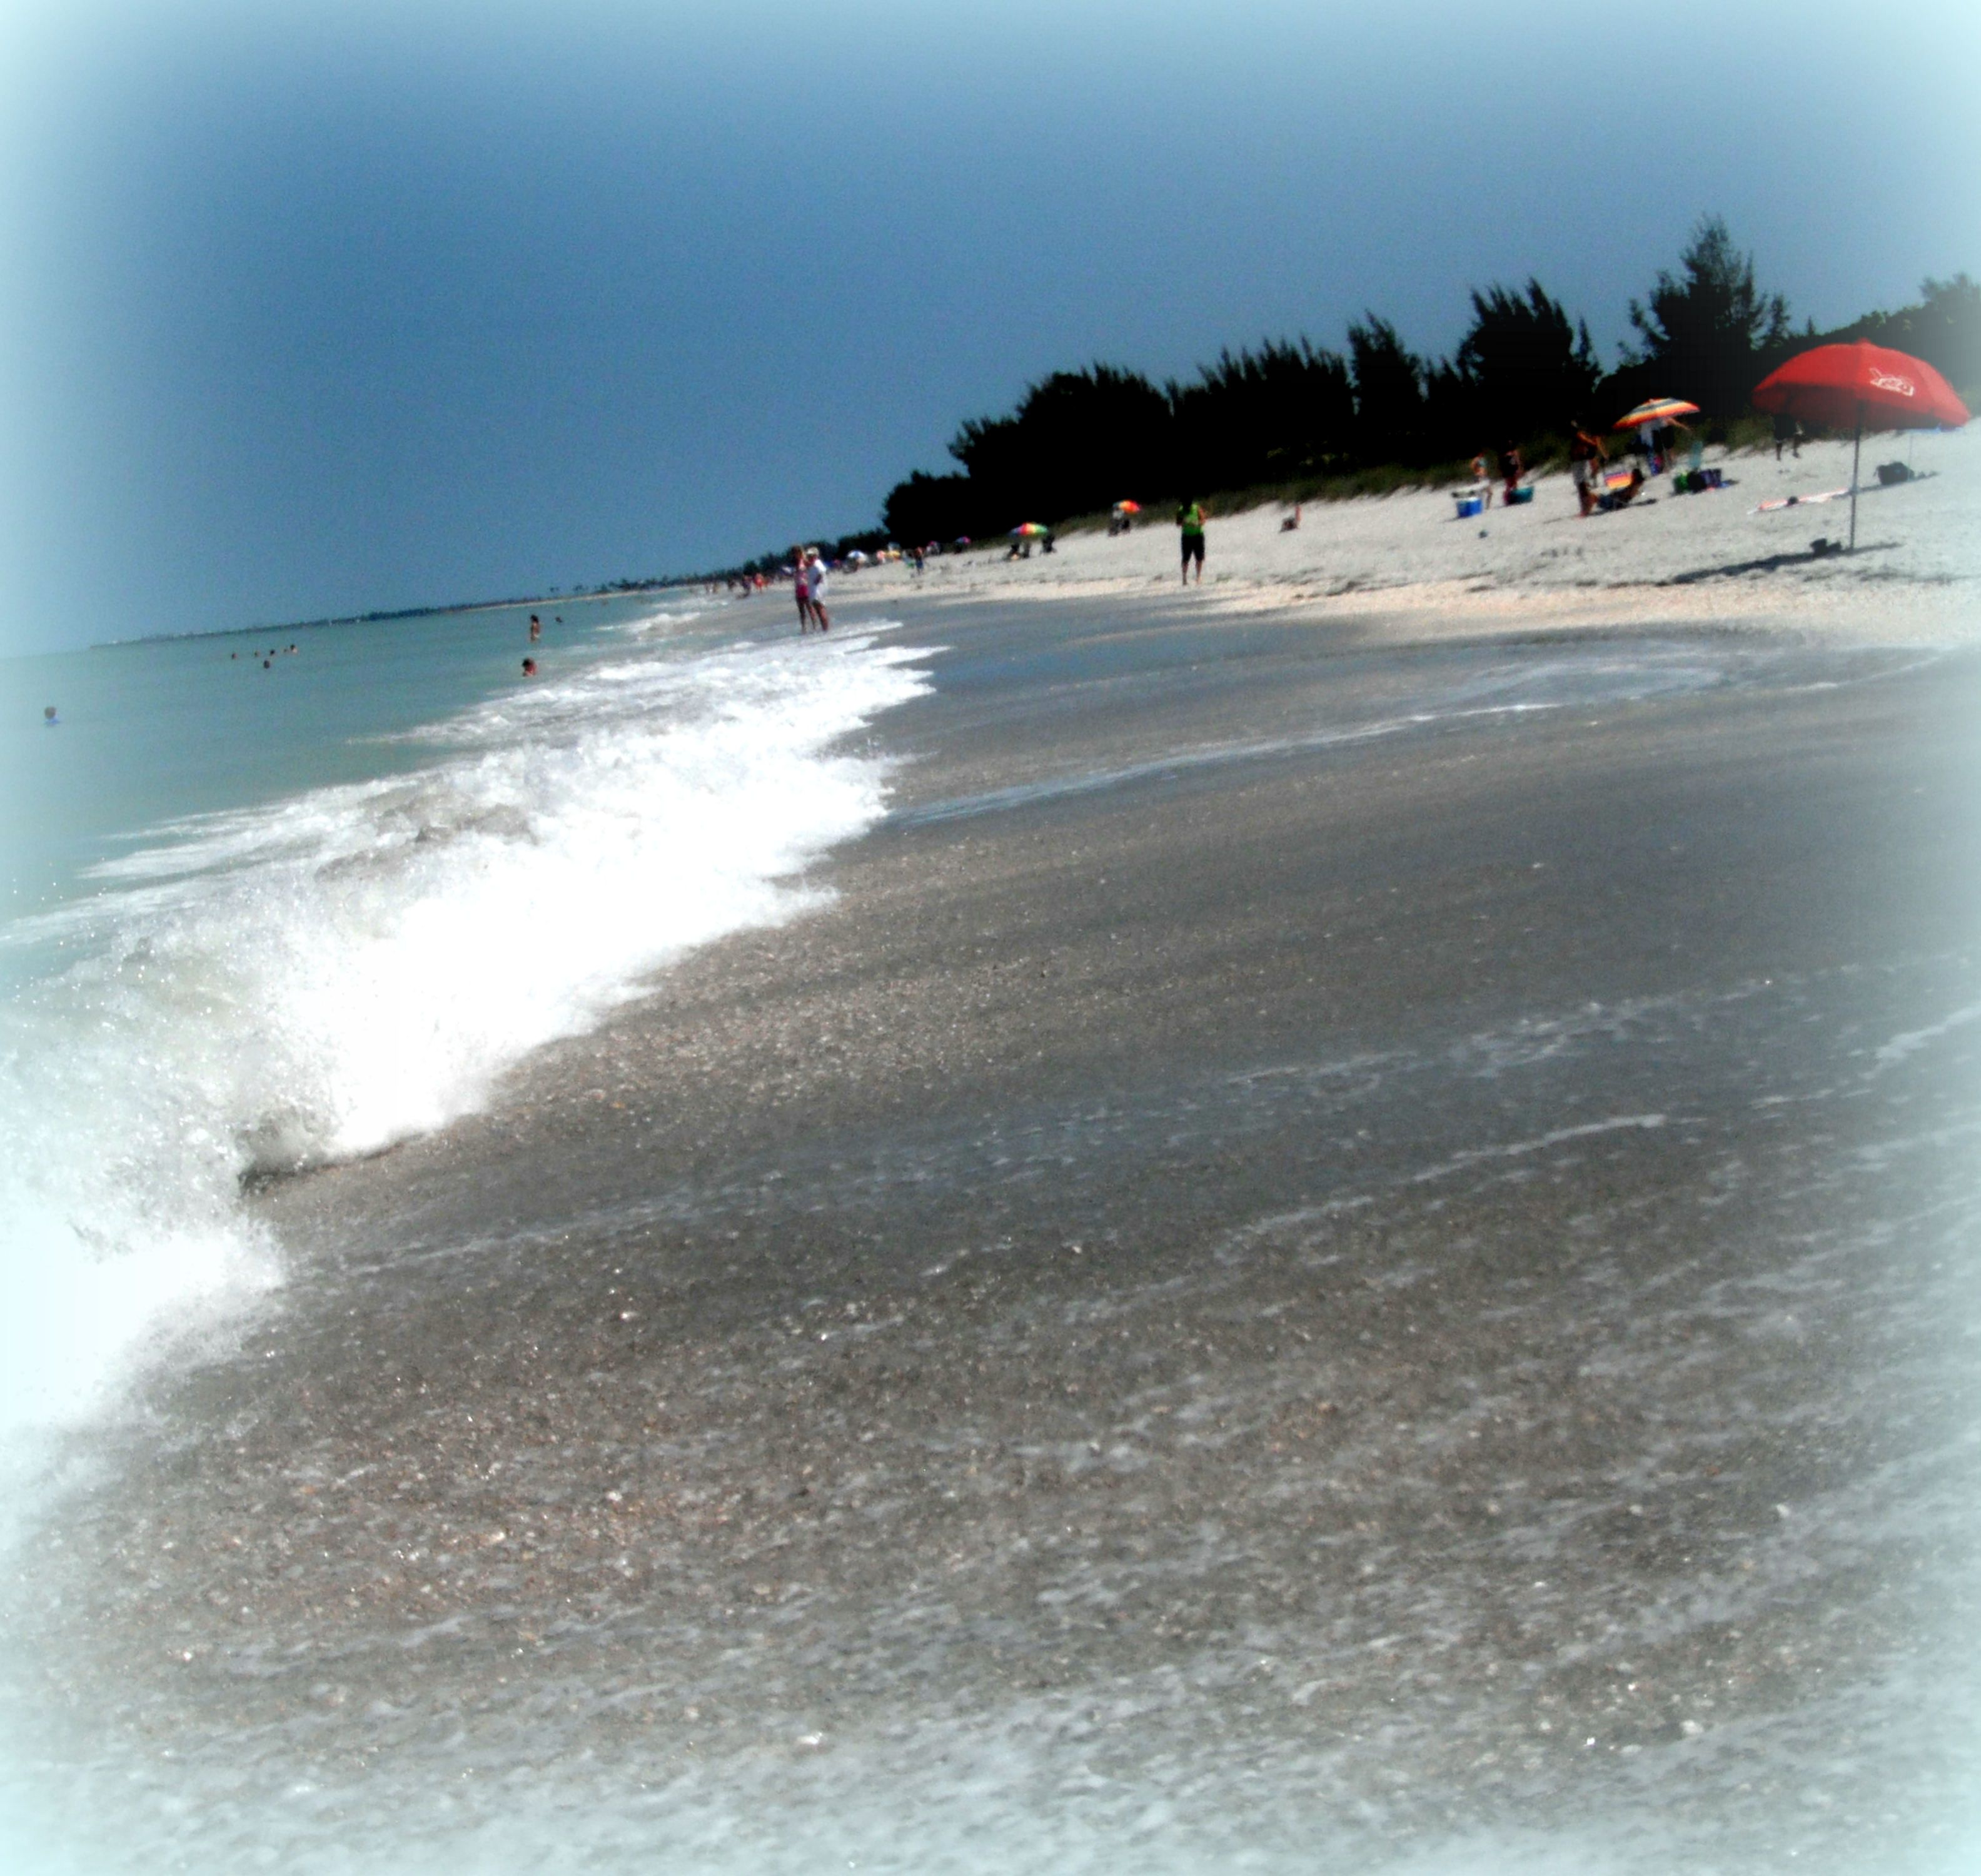 Beach scene sanibel island florida greeting card 315 shop greeting card beach scene sanibel island fl card created by photogiftgallery kristyandbryce Gallery